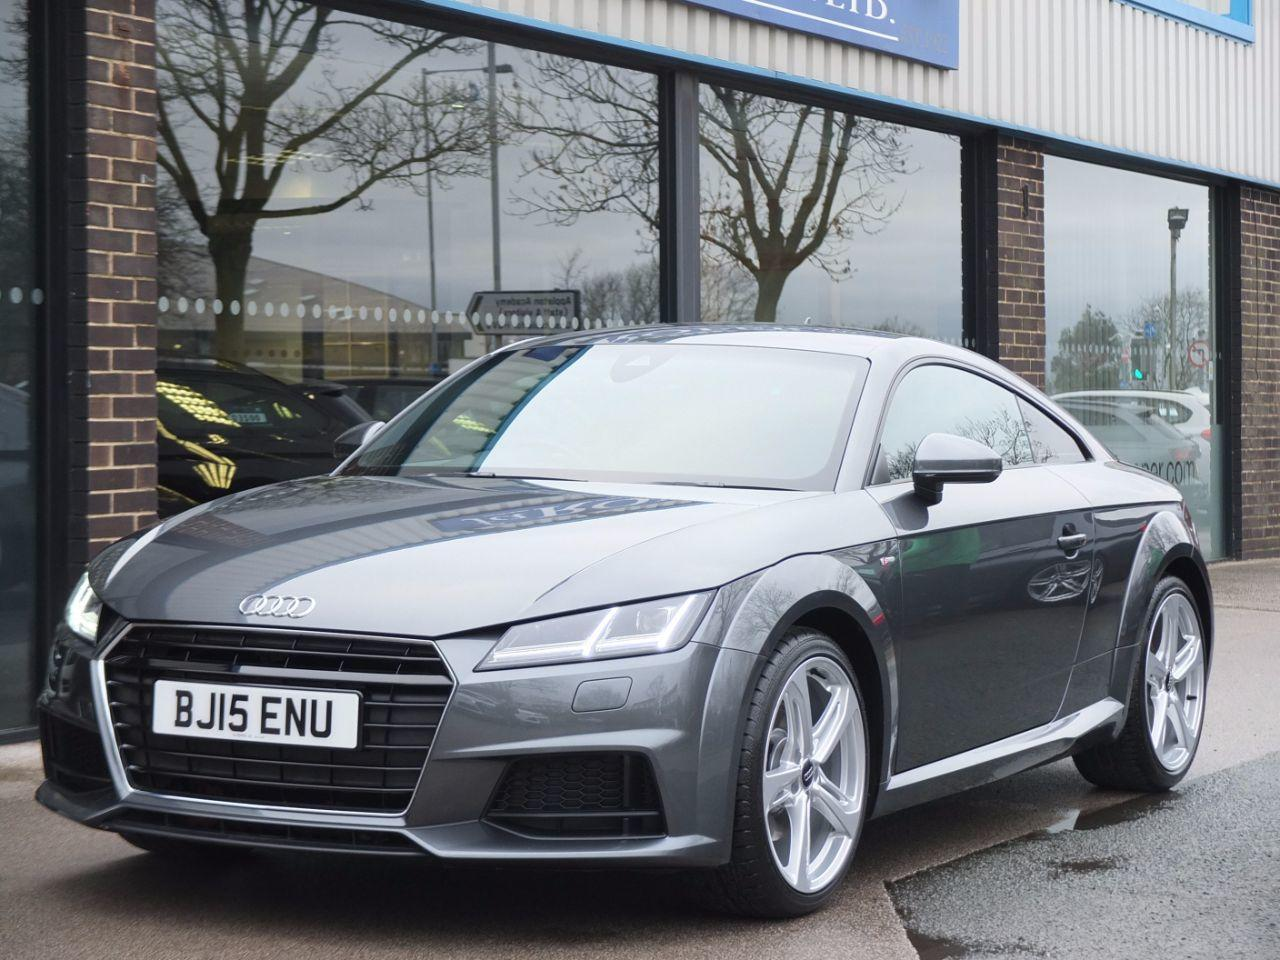 Audi TT Coupe 2.0T FSI S Line 230ps Coupe Petrol Daytona Grey MetallicAudi TT Coupe 2.0T FSI S Line 230ps Coupe Petrol Daytona Grey Metallic at fa Roper Ltd Bradford